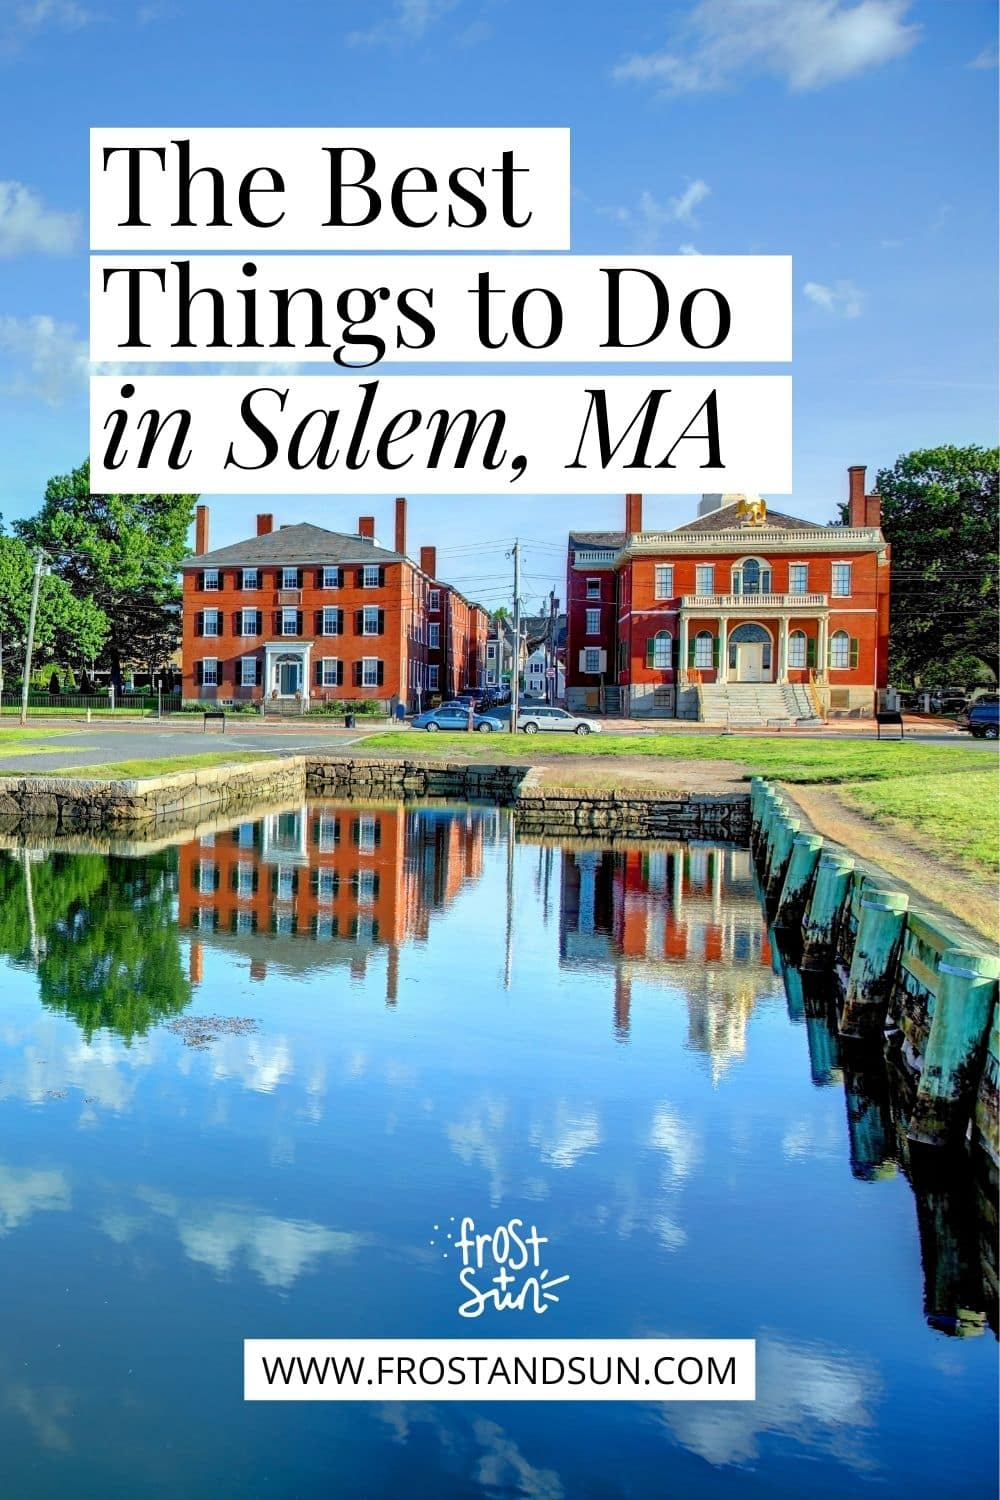 The Best Things to Do in Salem, MA